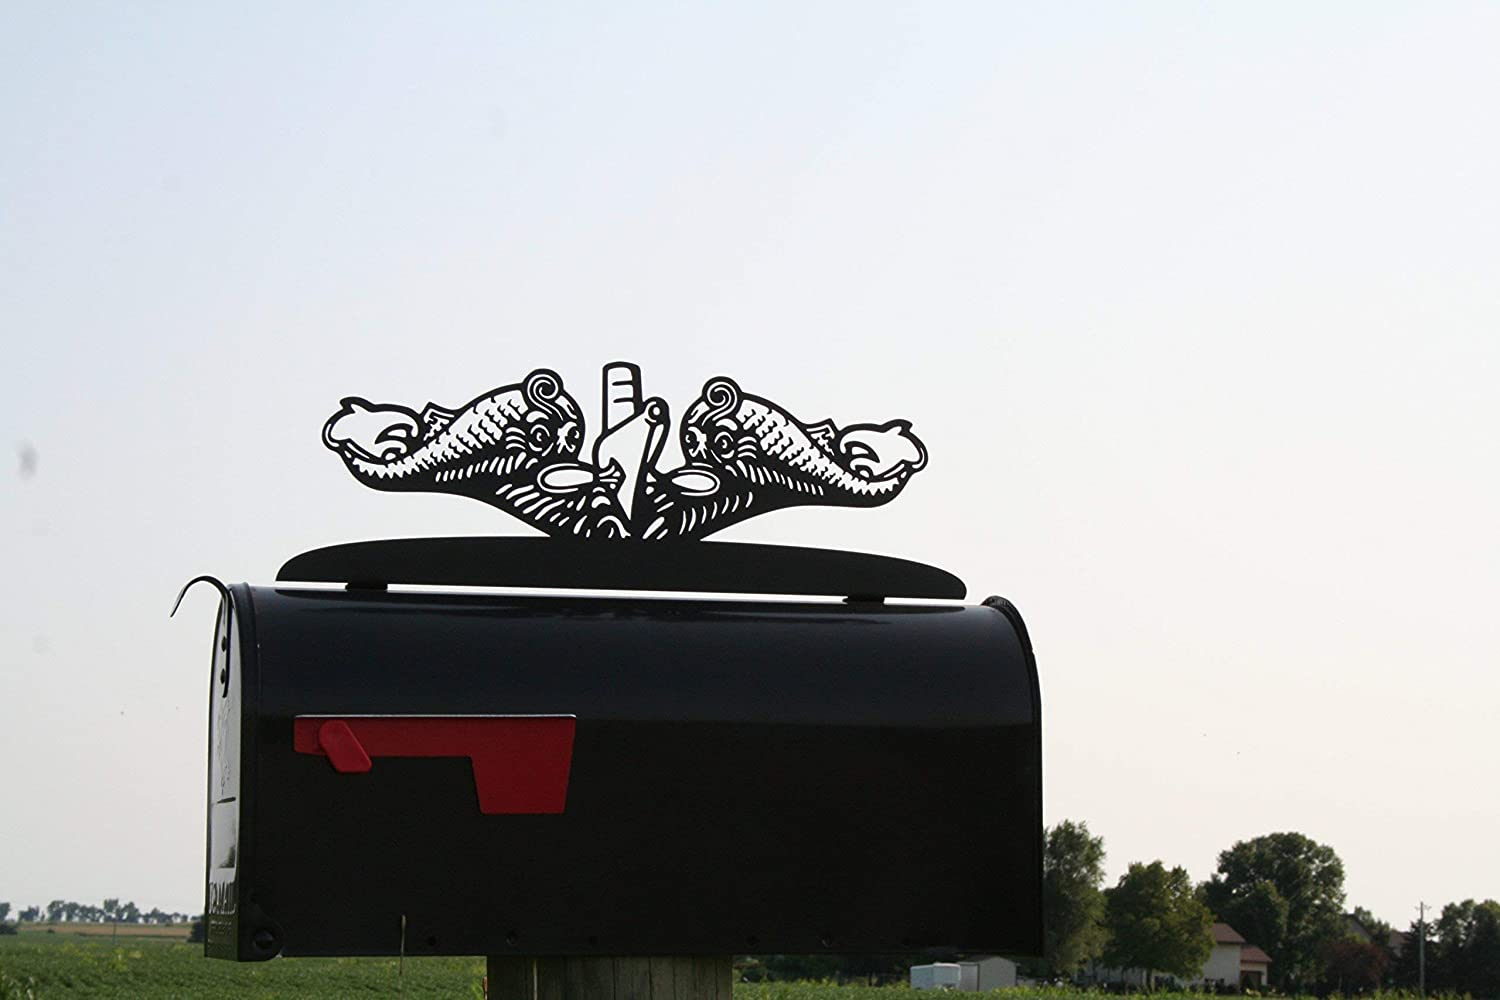 US Navy Submarine Dolphins Metal Mailbox Topper